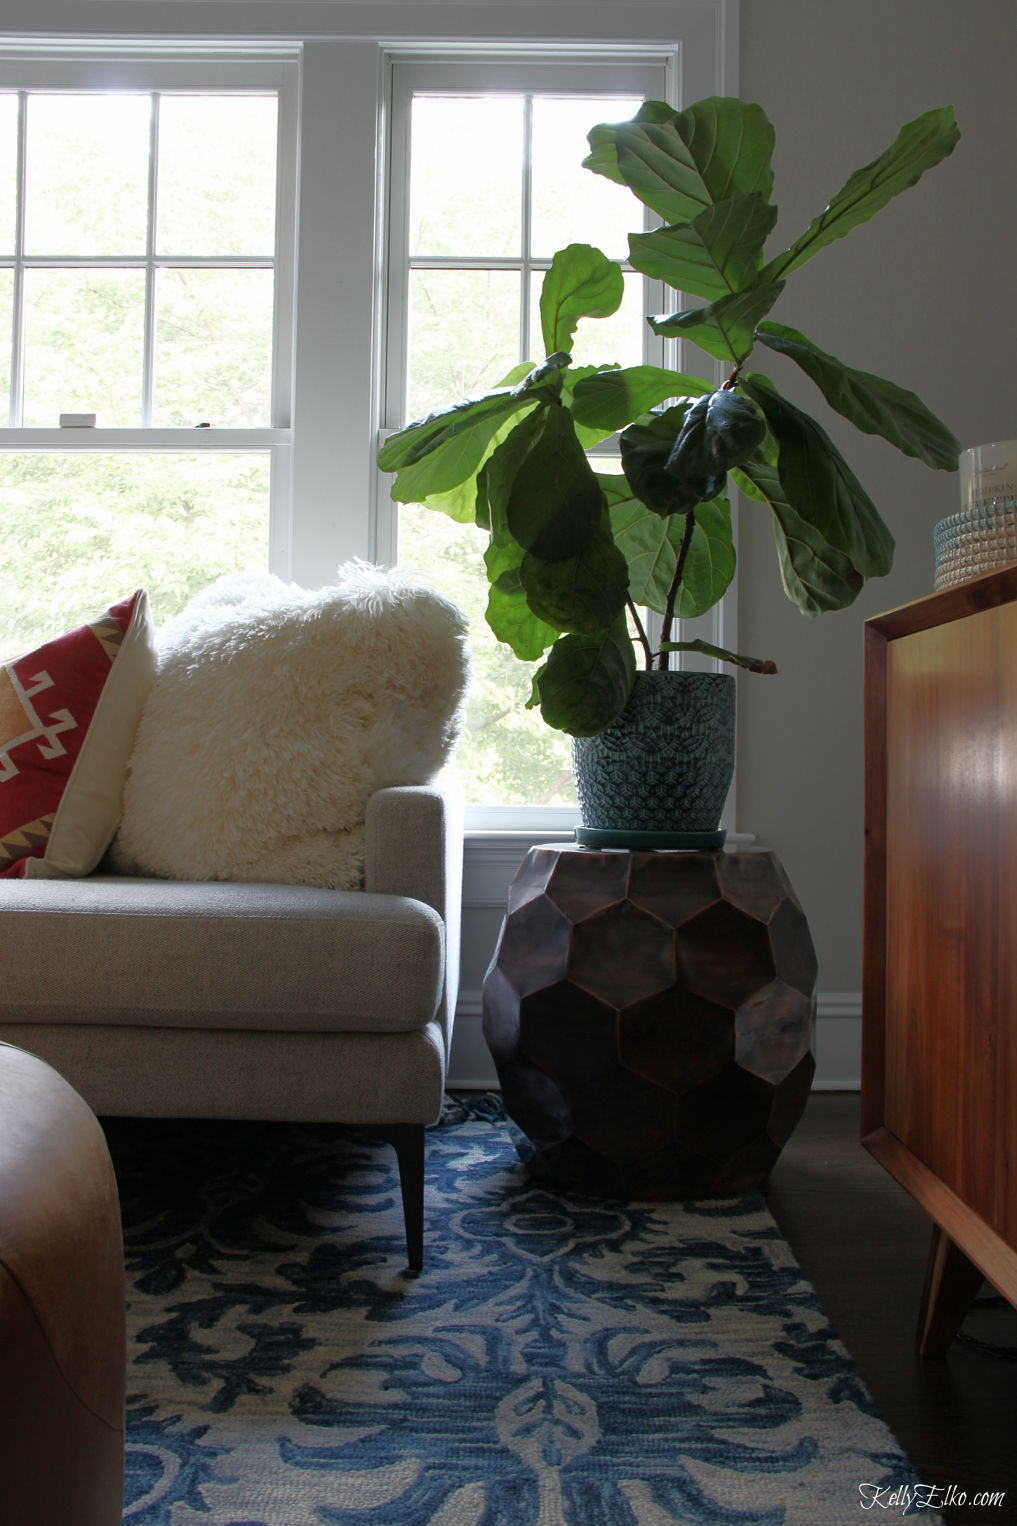 Love this fiddle leaf fig in this boho chic family room kellyelko.com #fiddleleaffig #greenthumb #plants #familyroom #familyroomdecor